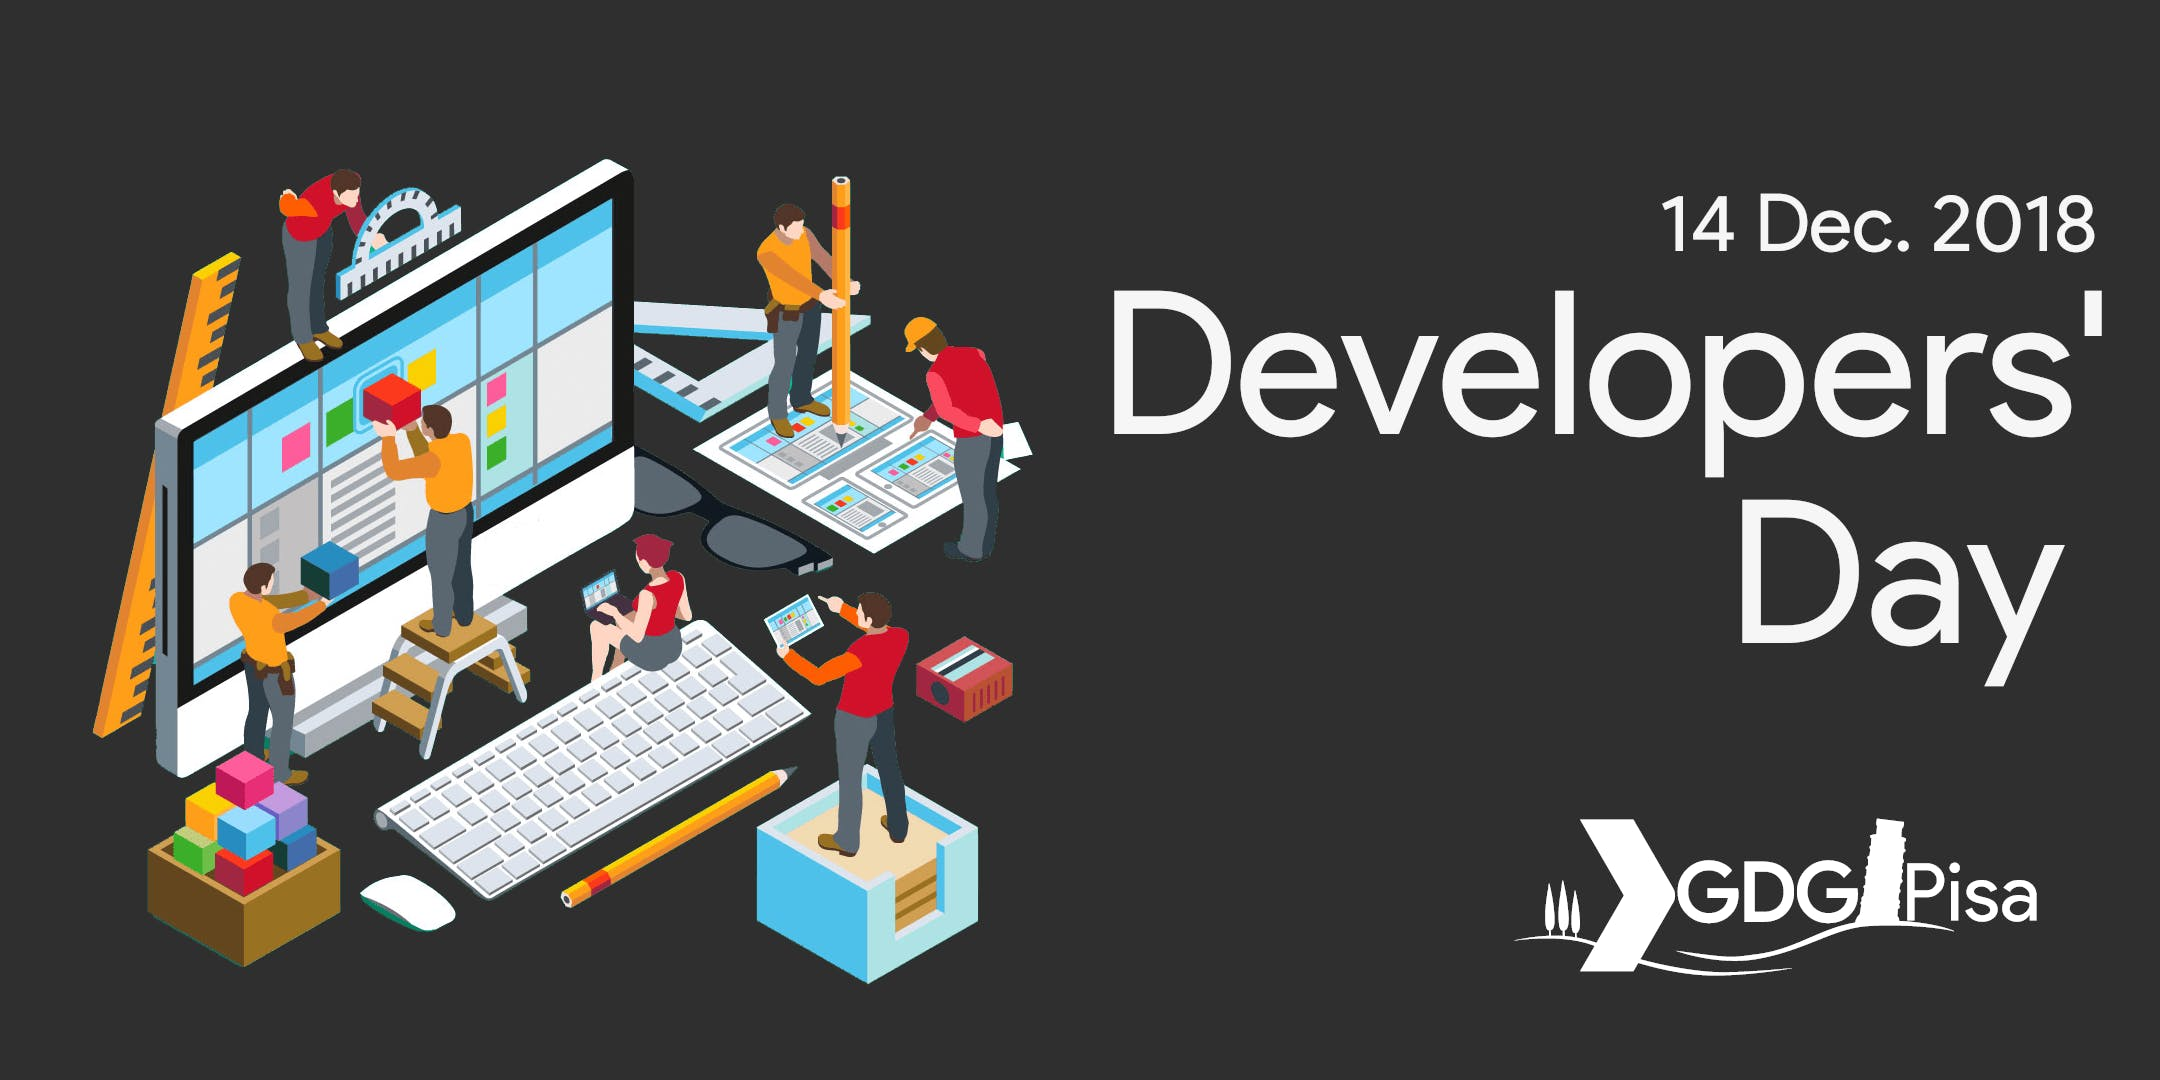 Developers' Day